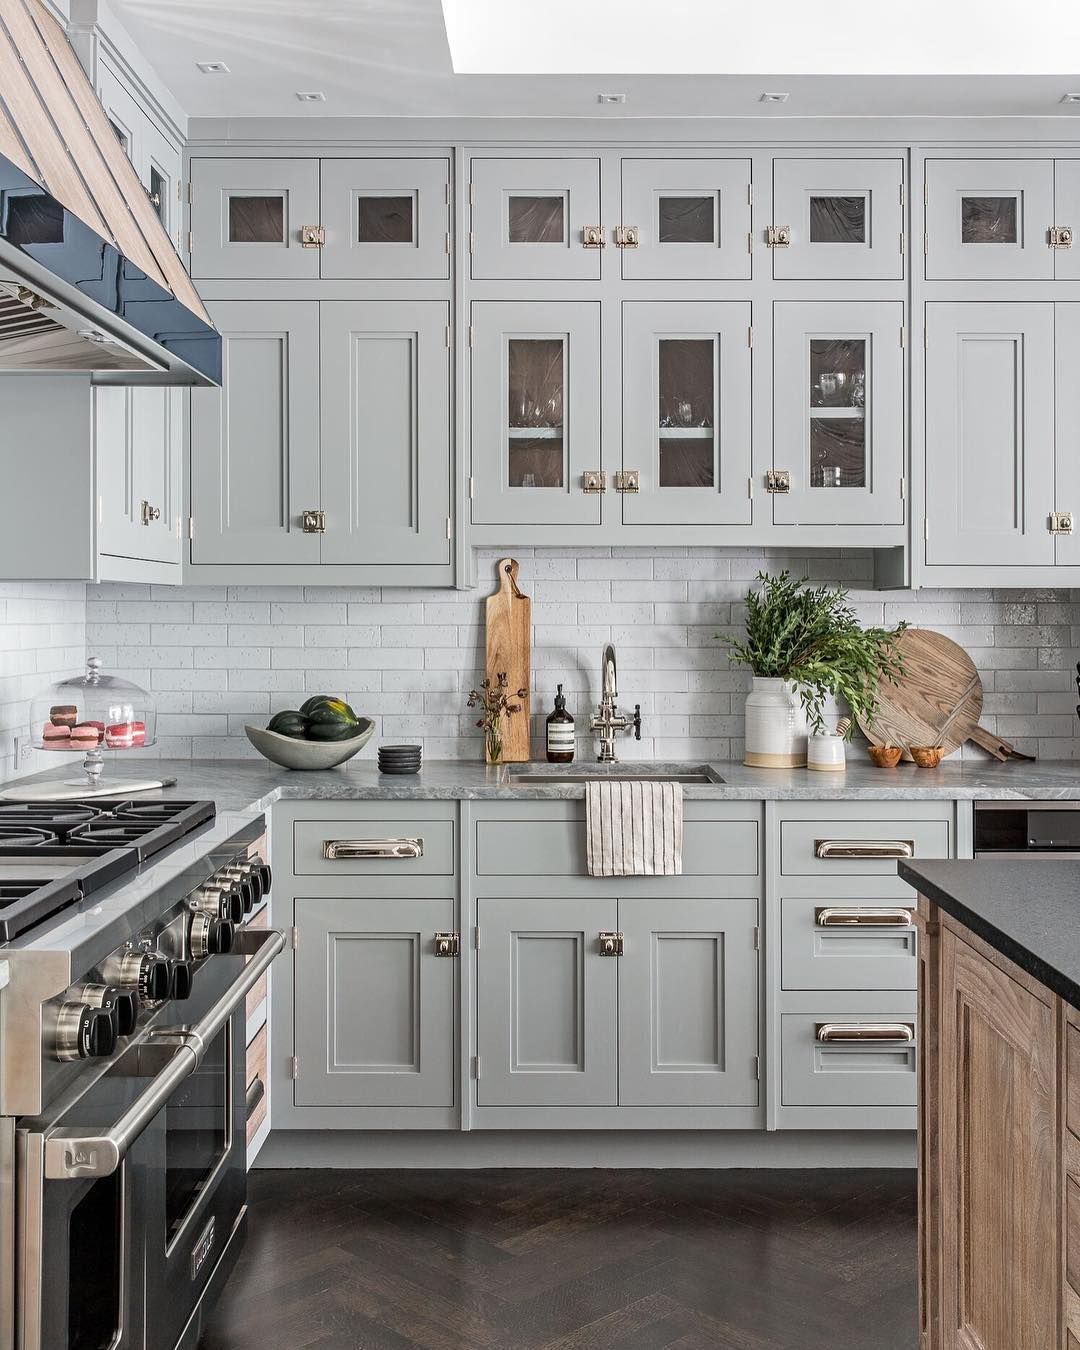 slab kitchen cabinets 57 8k followers 1 589 following 1 910 posts see 2296